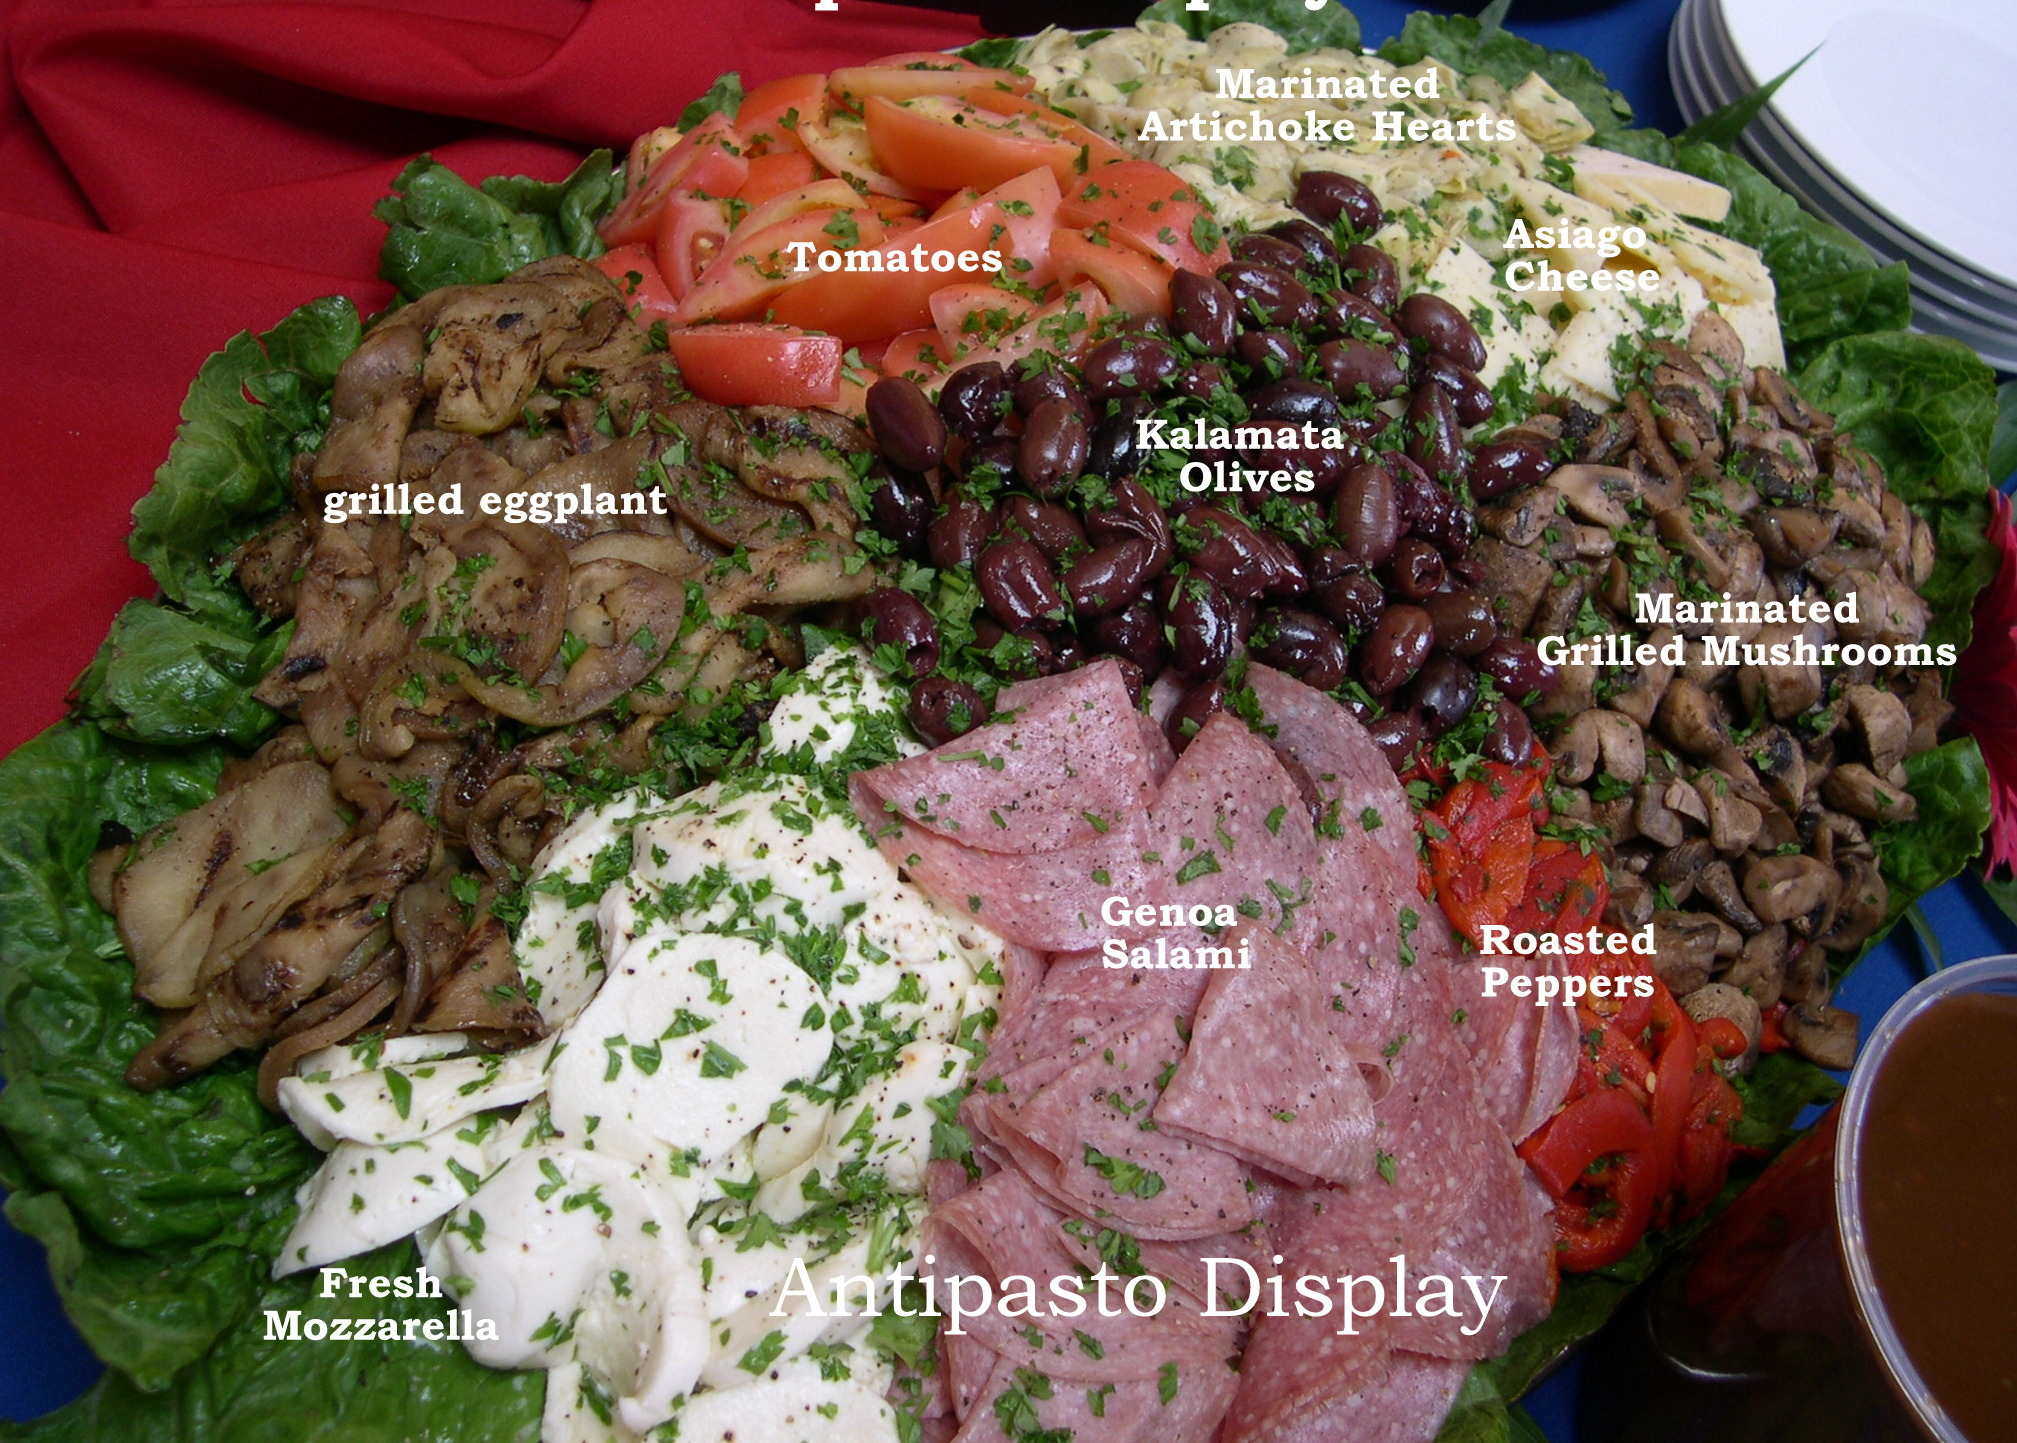 Antipasto display.jpg